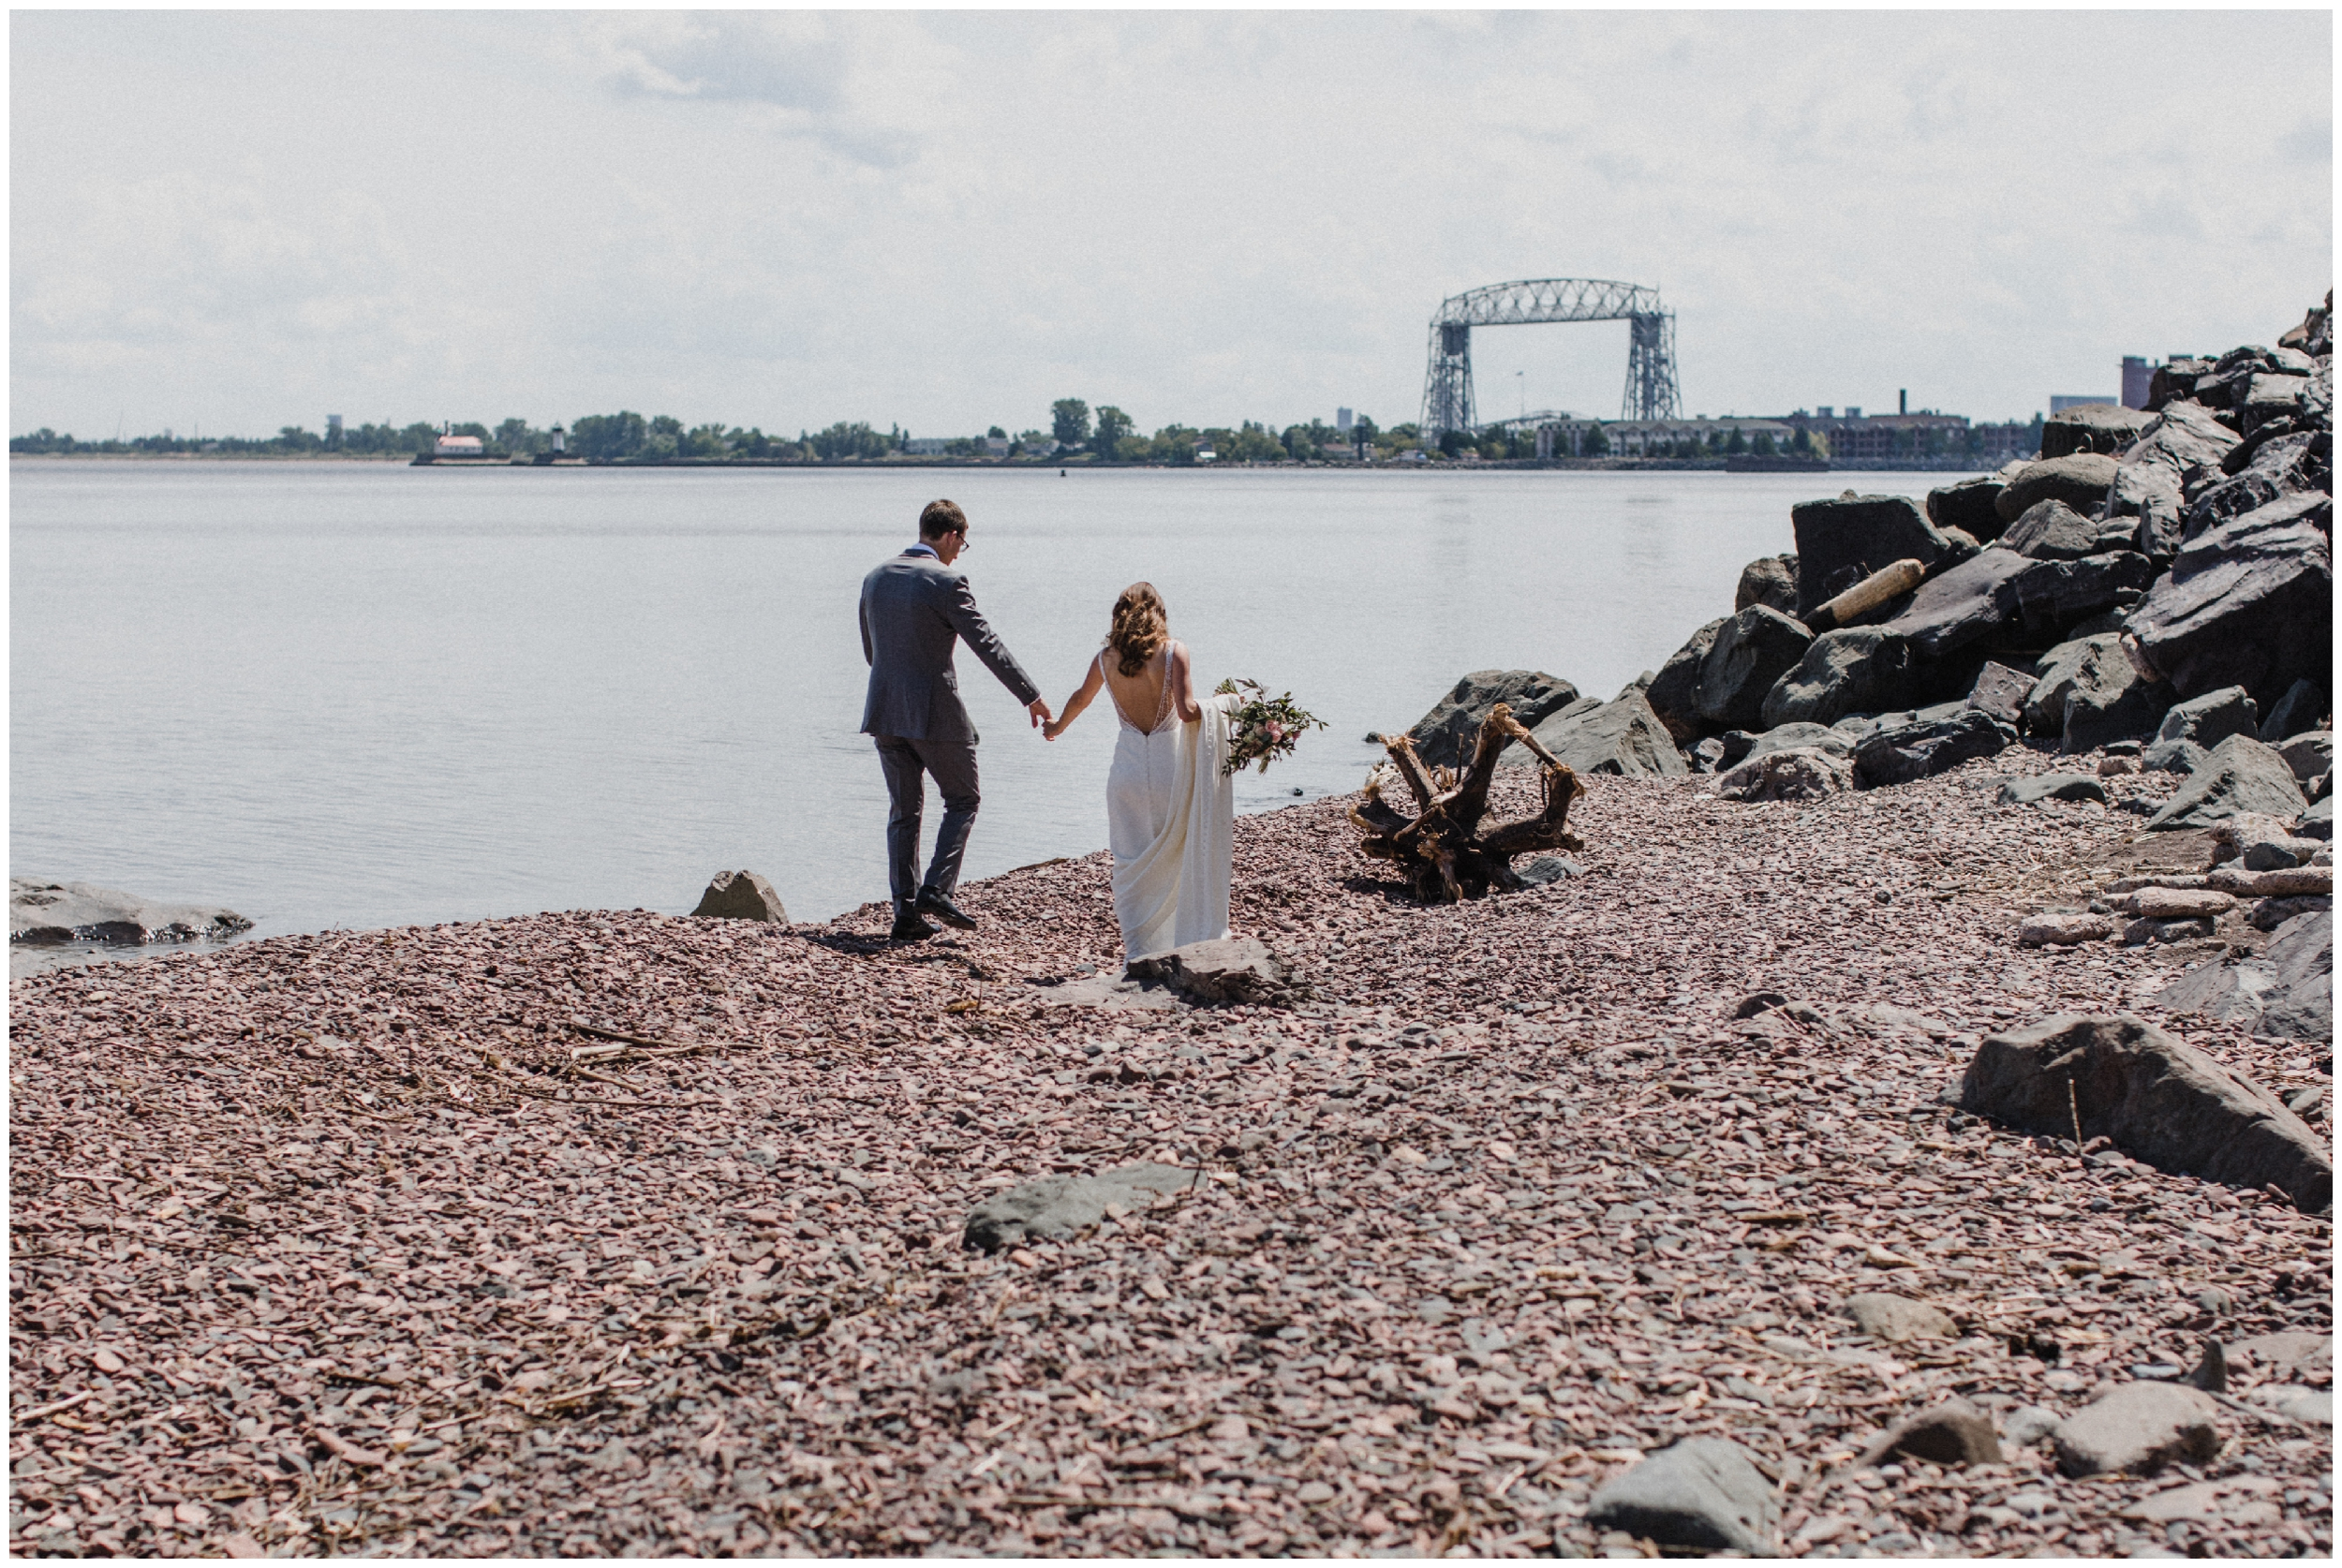 North shore wedding in Duluth Minnesota